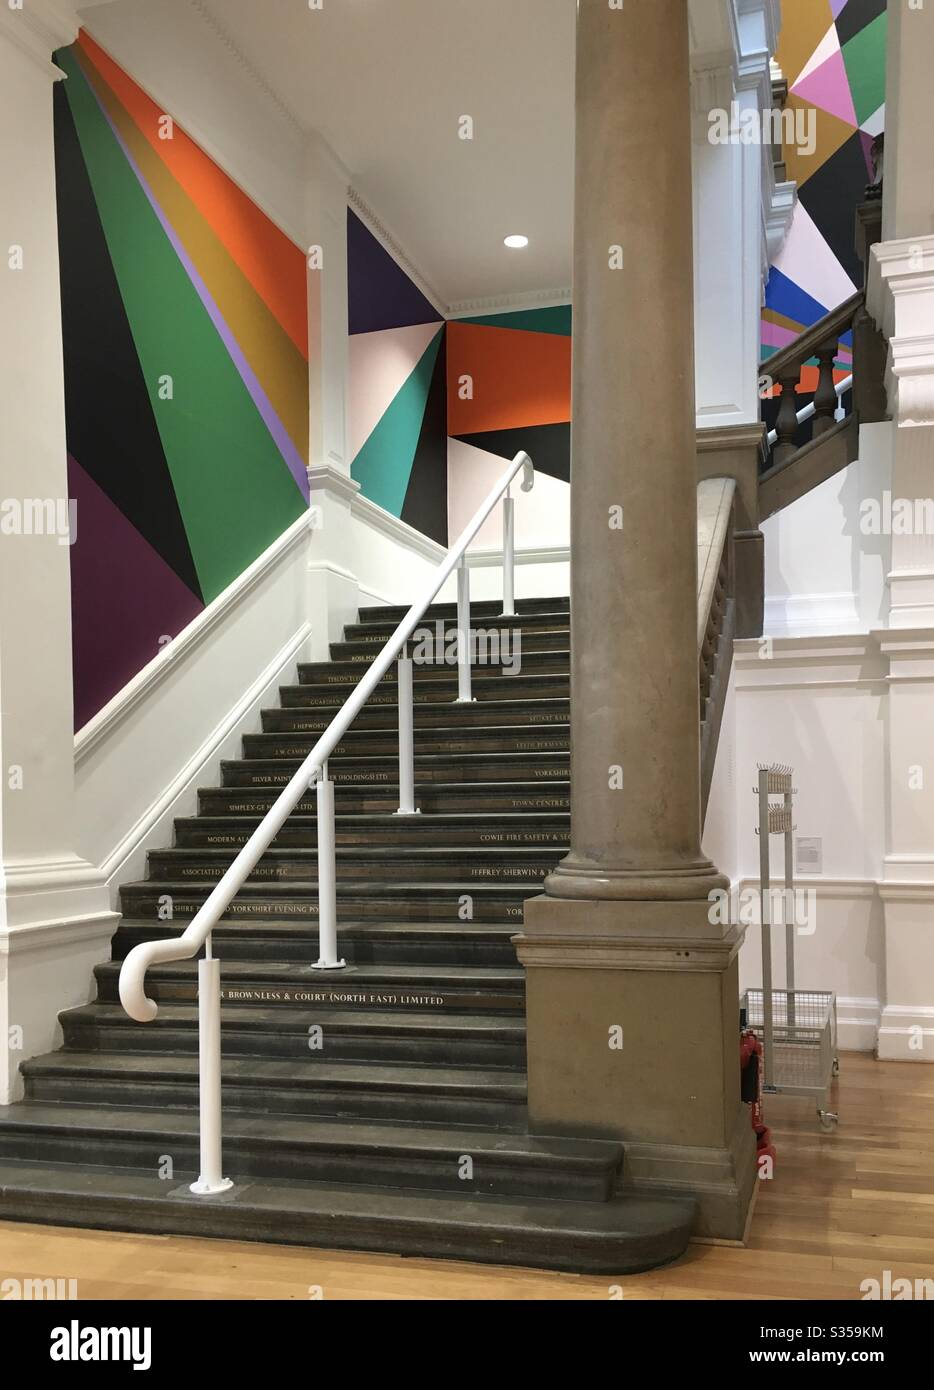 The colourful attractive decor of the main staircase in the entrance of Leeds City Art Gallery, West Yorkshire, UK. It is linked to the Henry Moore Institute with which it shares sculptures. Stock Photo